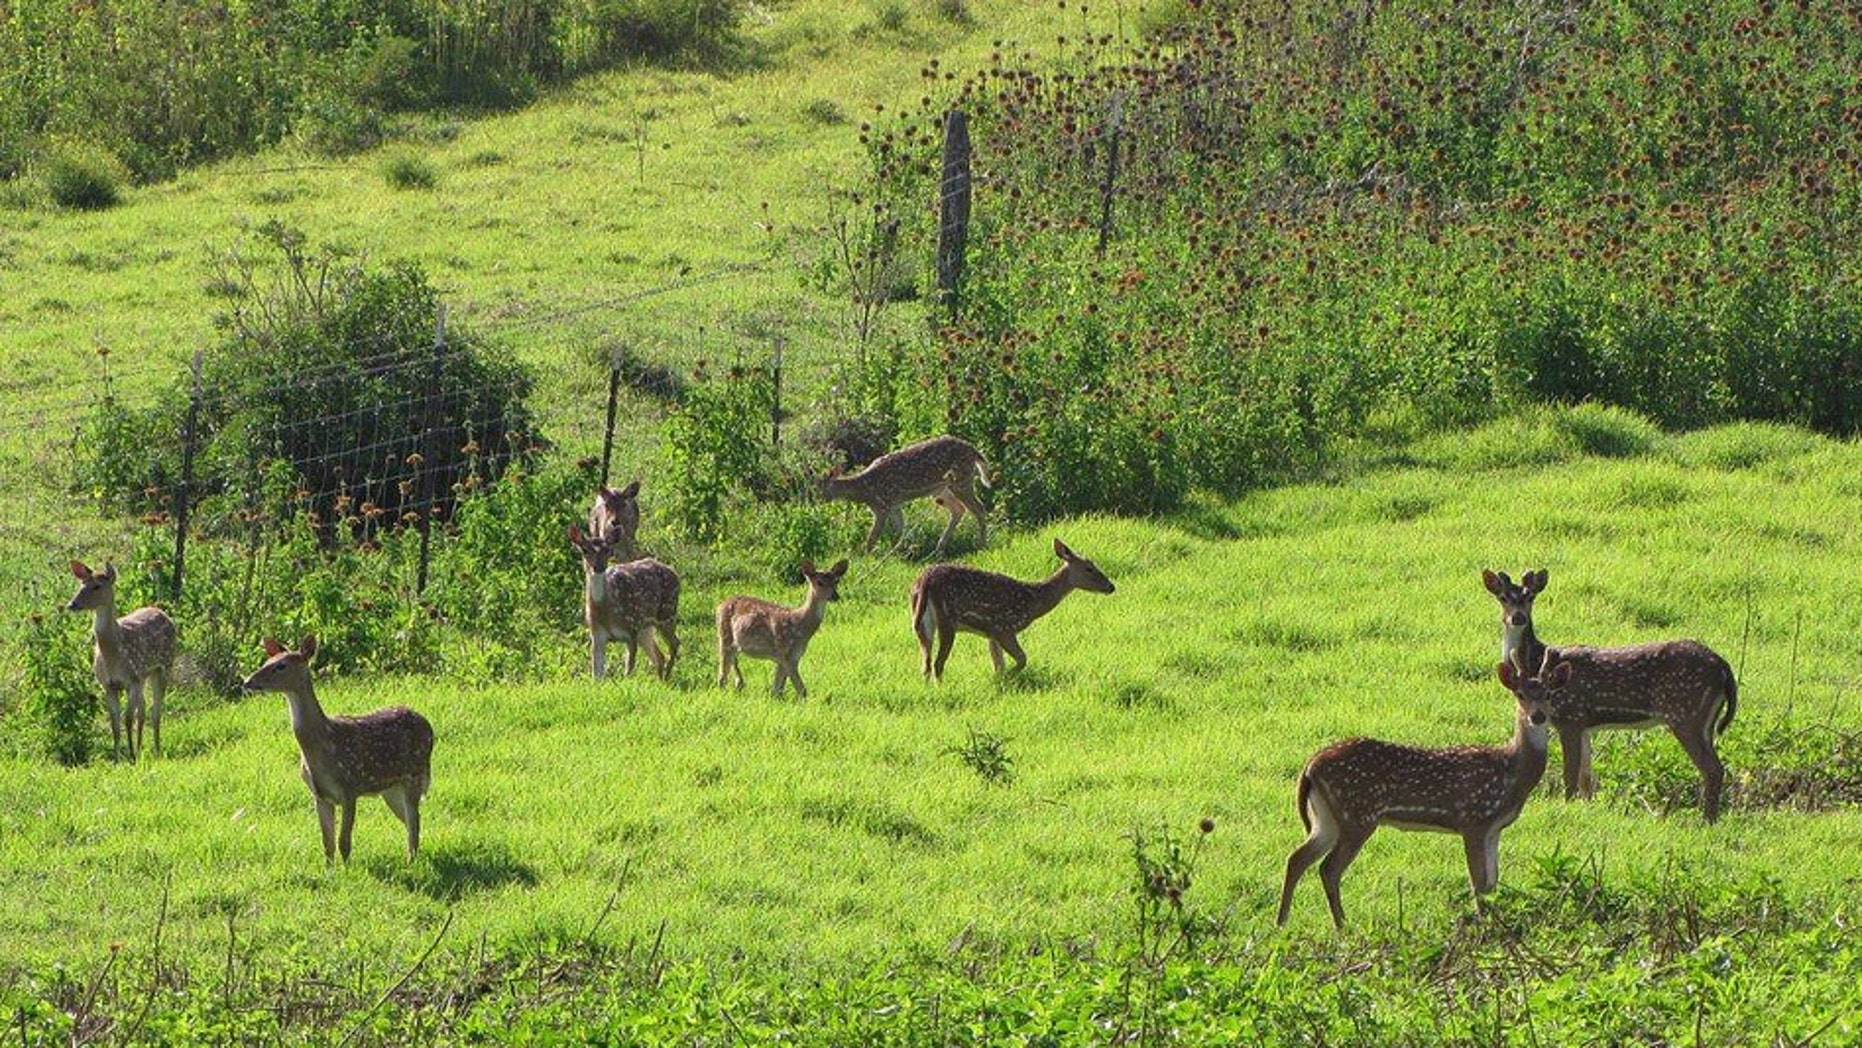 In this April 12, 2012 photo provided by Forest and Kim Starr, axis deer are shown in upcountry Maui near Makawao, Hawaii. In Maui, deer have caused $1 million in damage during the past two years for farmers, ranchers, and resorts, according to a county survey.